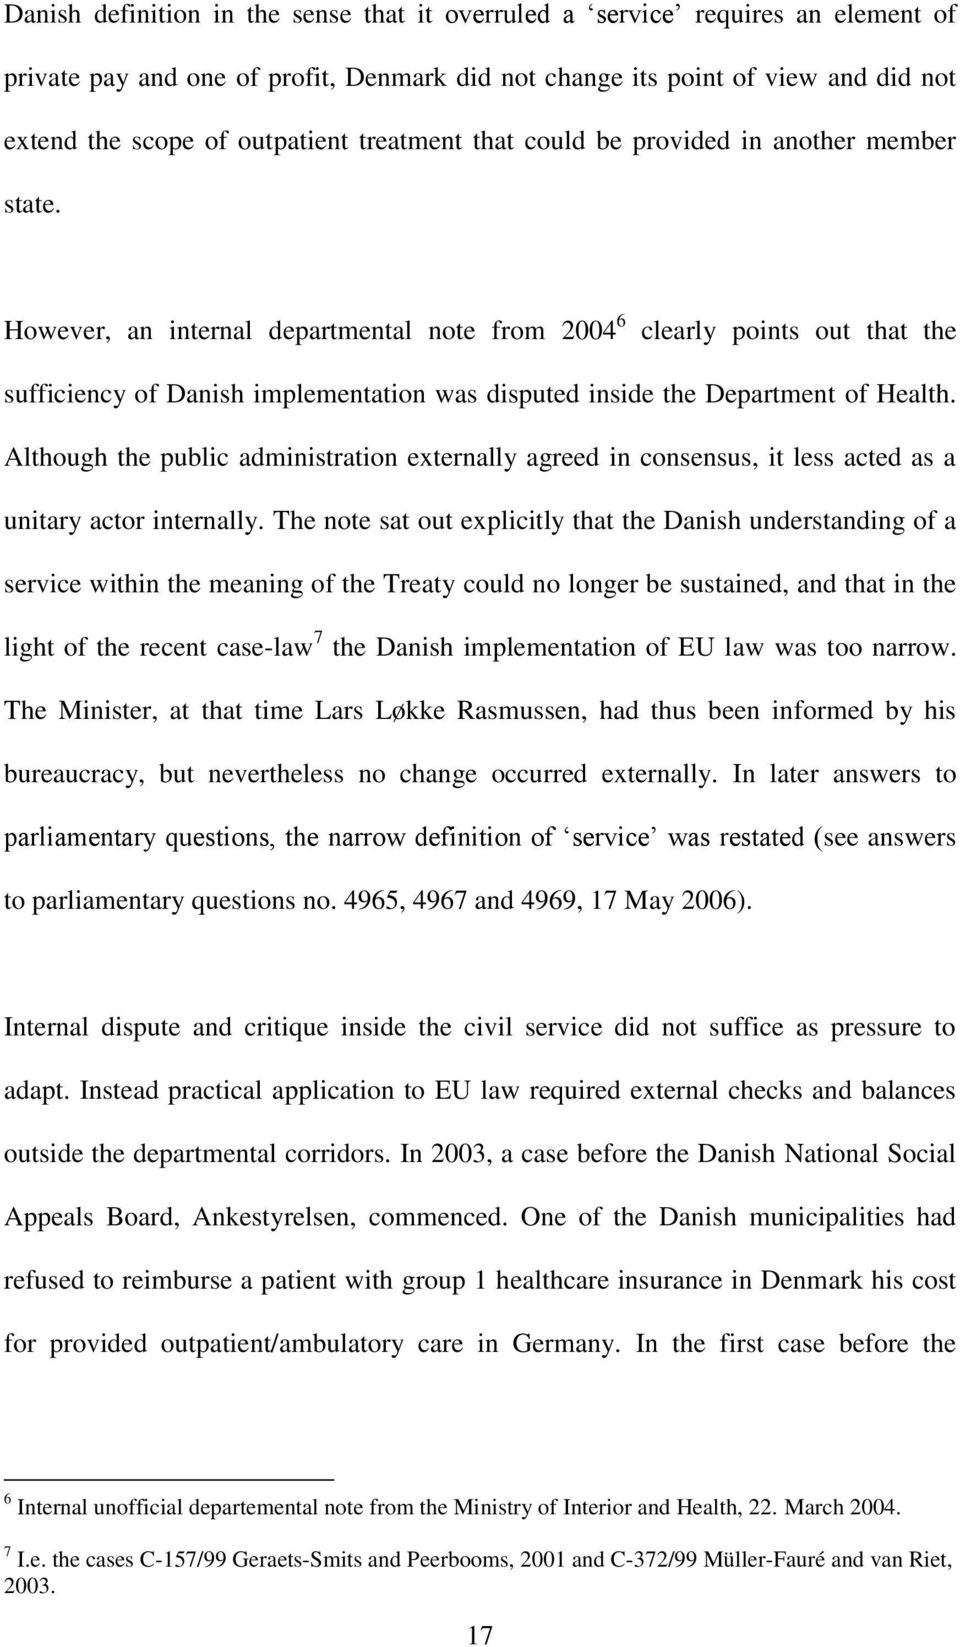 However, an internal departmental note from 2004 6 clearly points out that the sufficiency of Danish implementation was disputed inside the Department of Health.